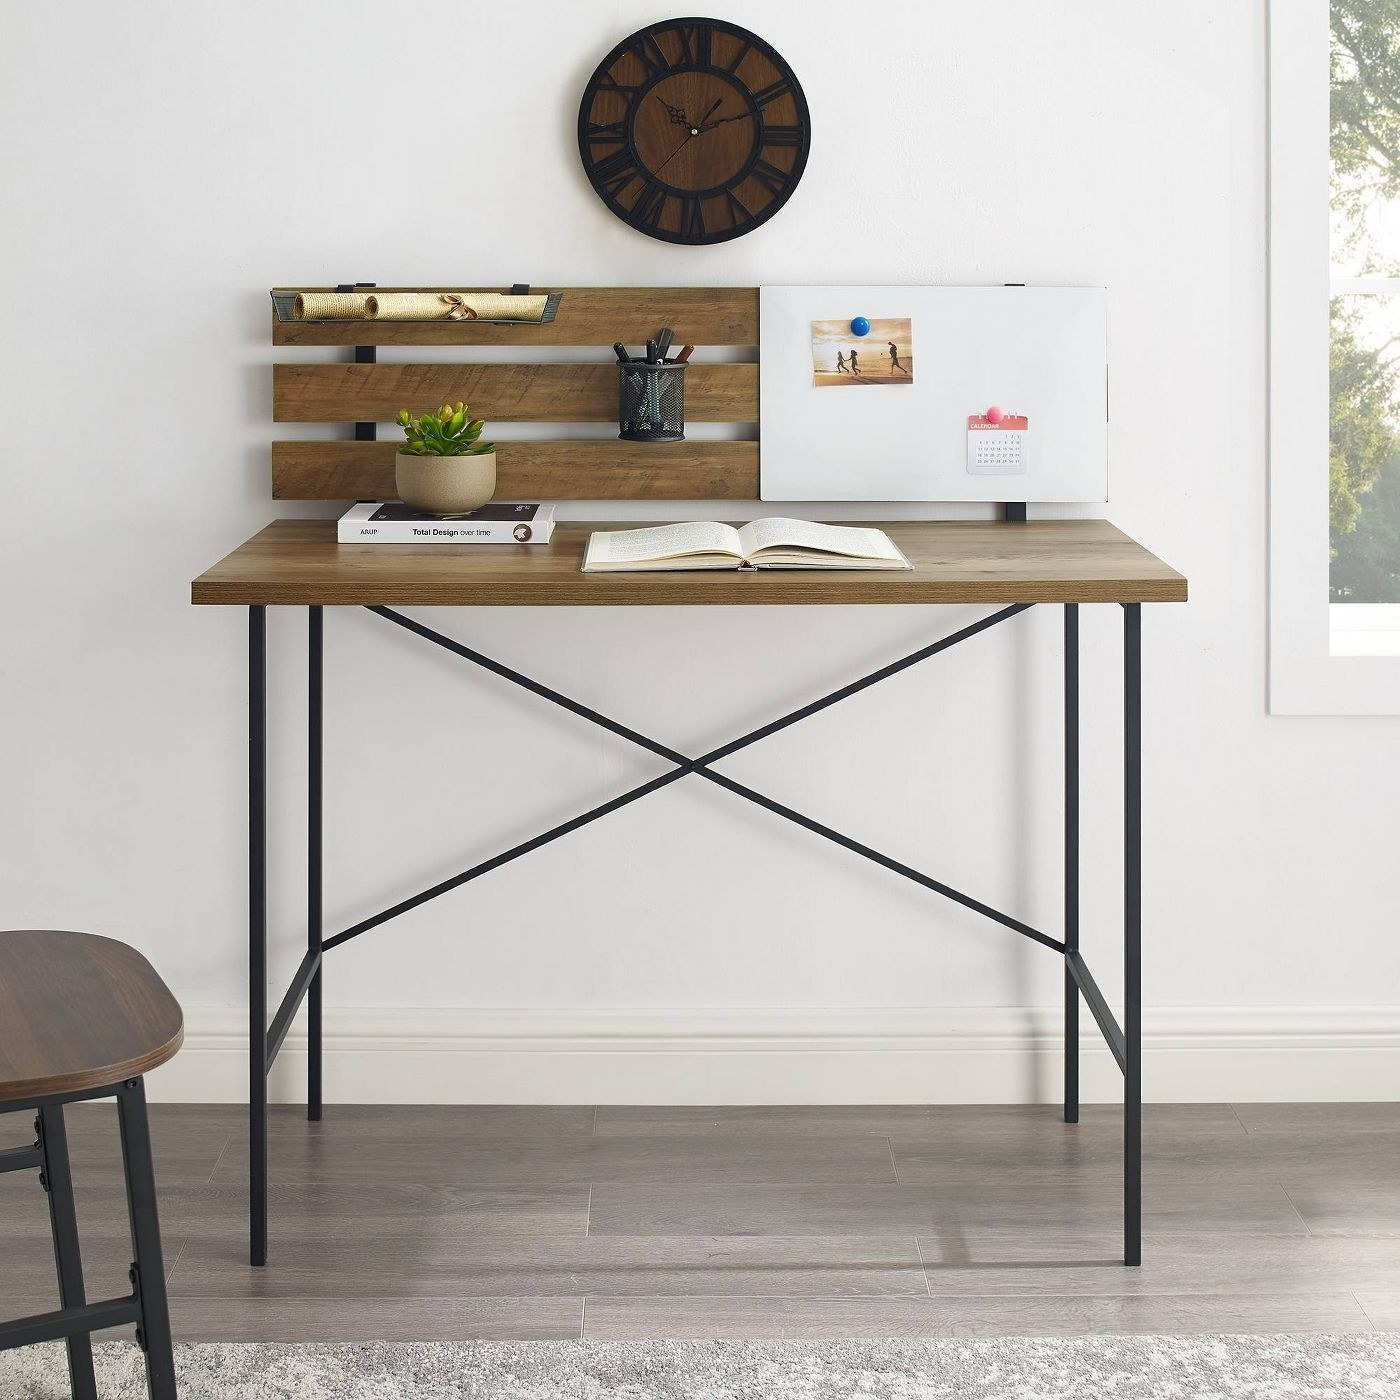 A wooden desk with black metal legs and a decorative packing against the wall for hanging photos or organizing items